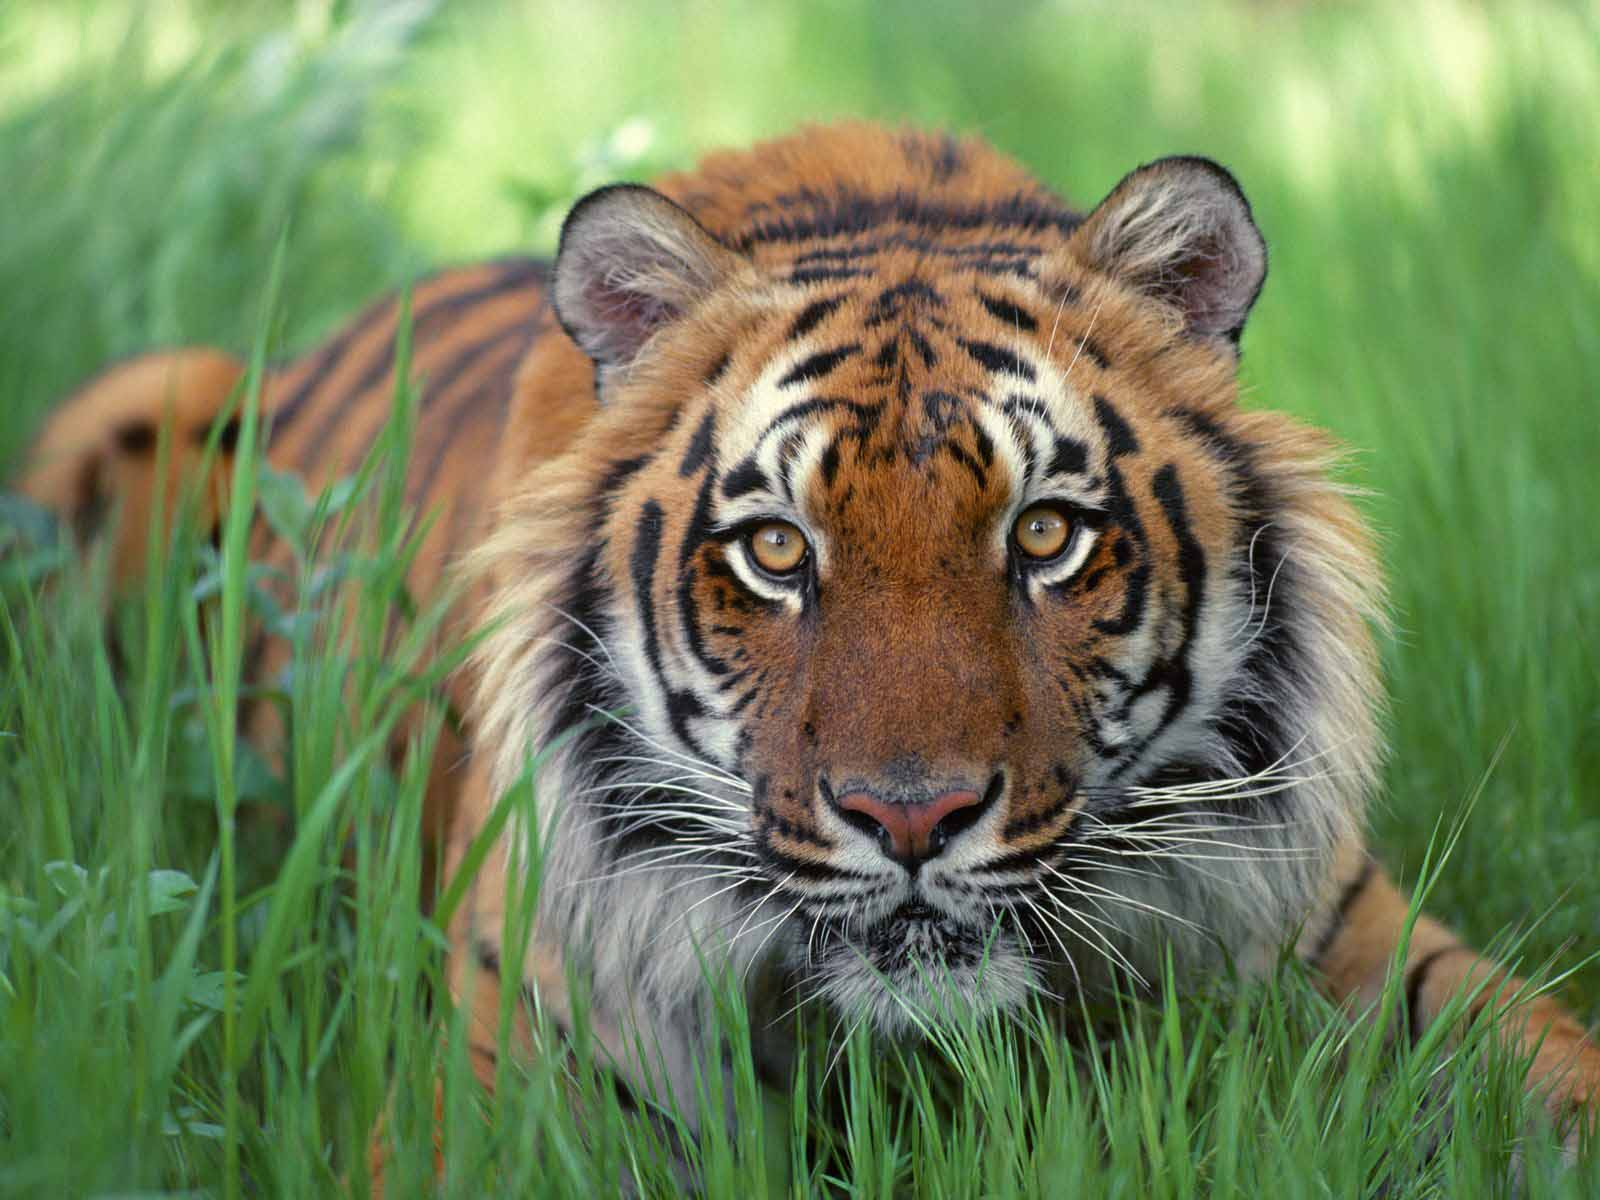 bengal tiger Characteristics the bengal tiger's coat is yellow to light orange, with stripes ranging from dark brown to black the belly and the interior parts of the limbs are white, and the tail is orange with black rings.